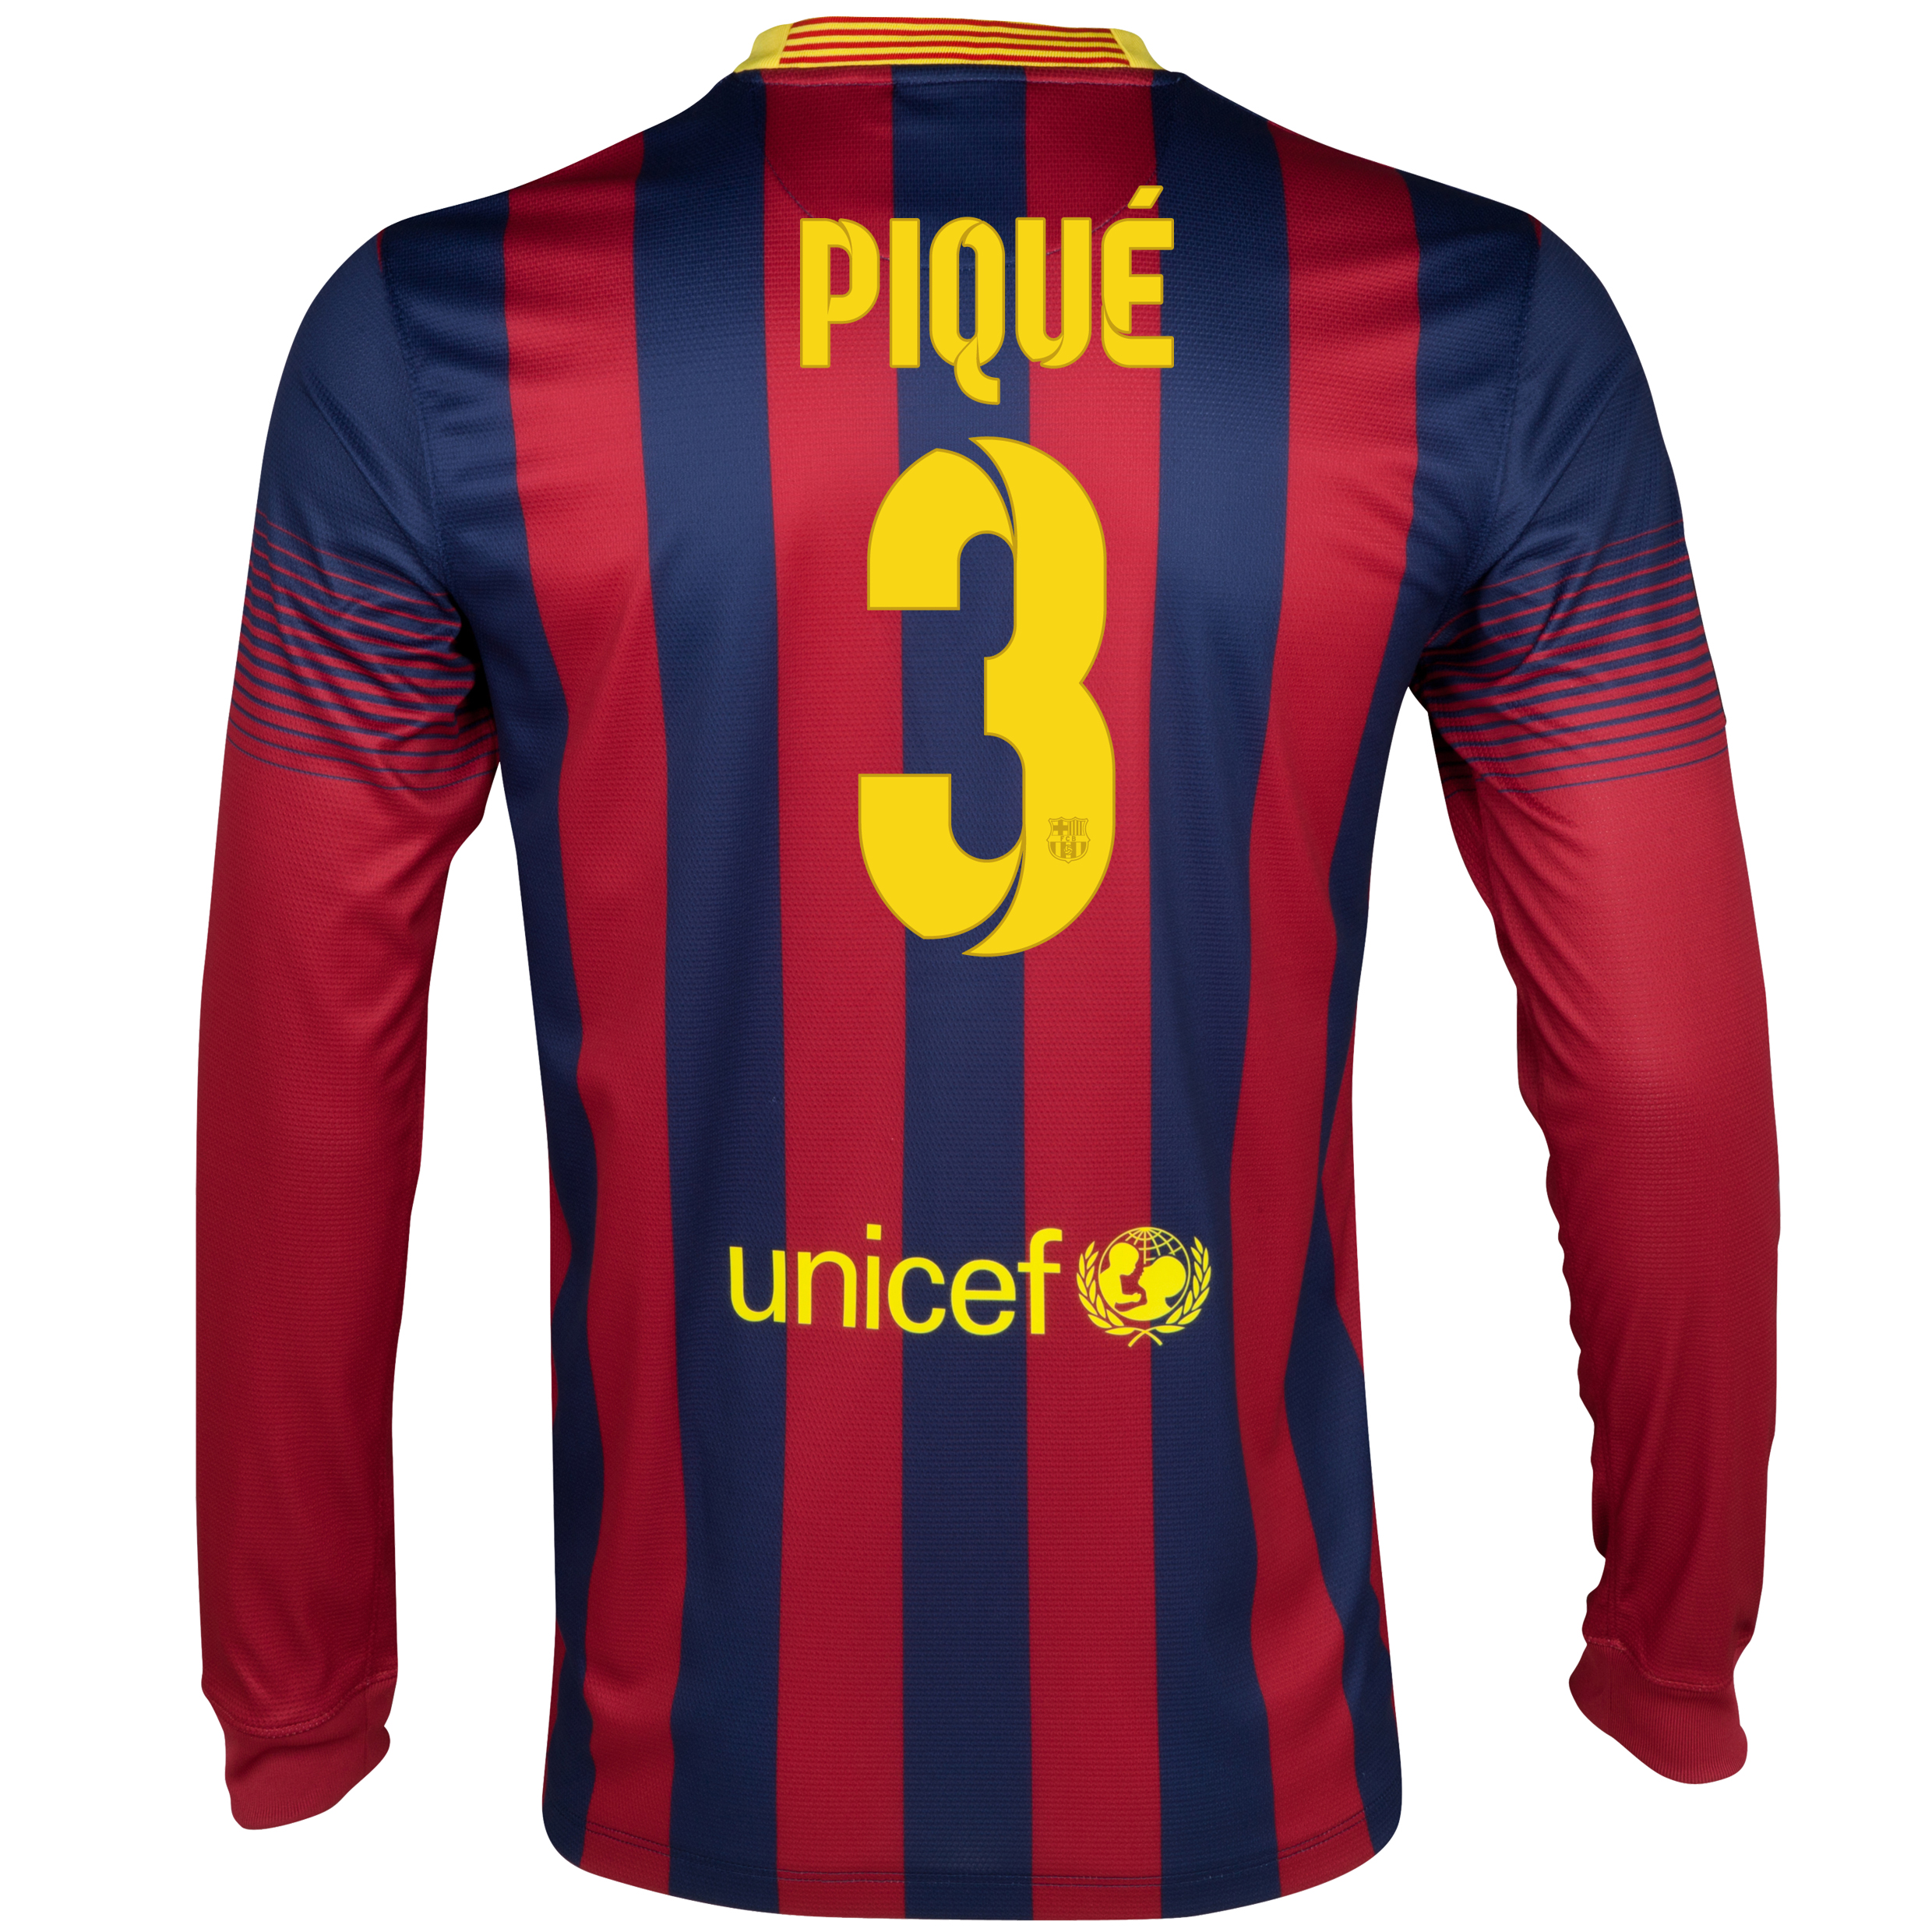 Barcelona Home Shirt 2013/14 - Long Sleeved with Pique 3 printing